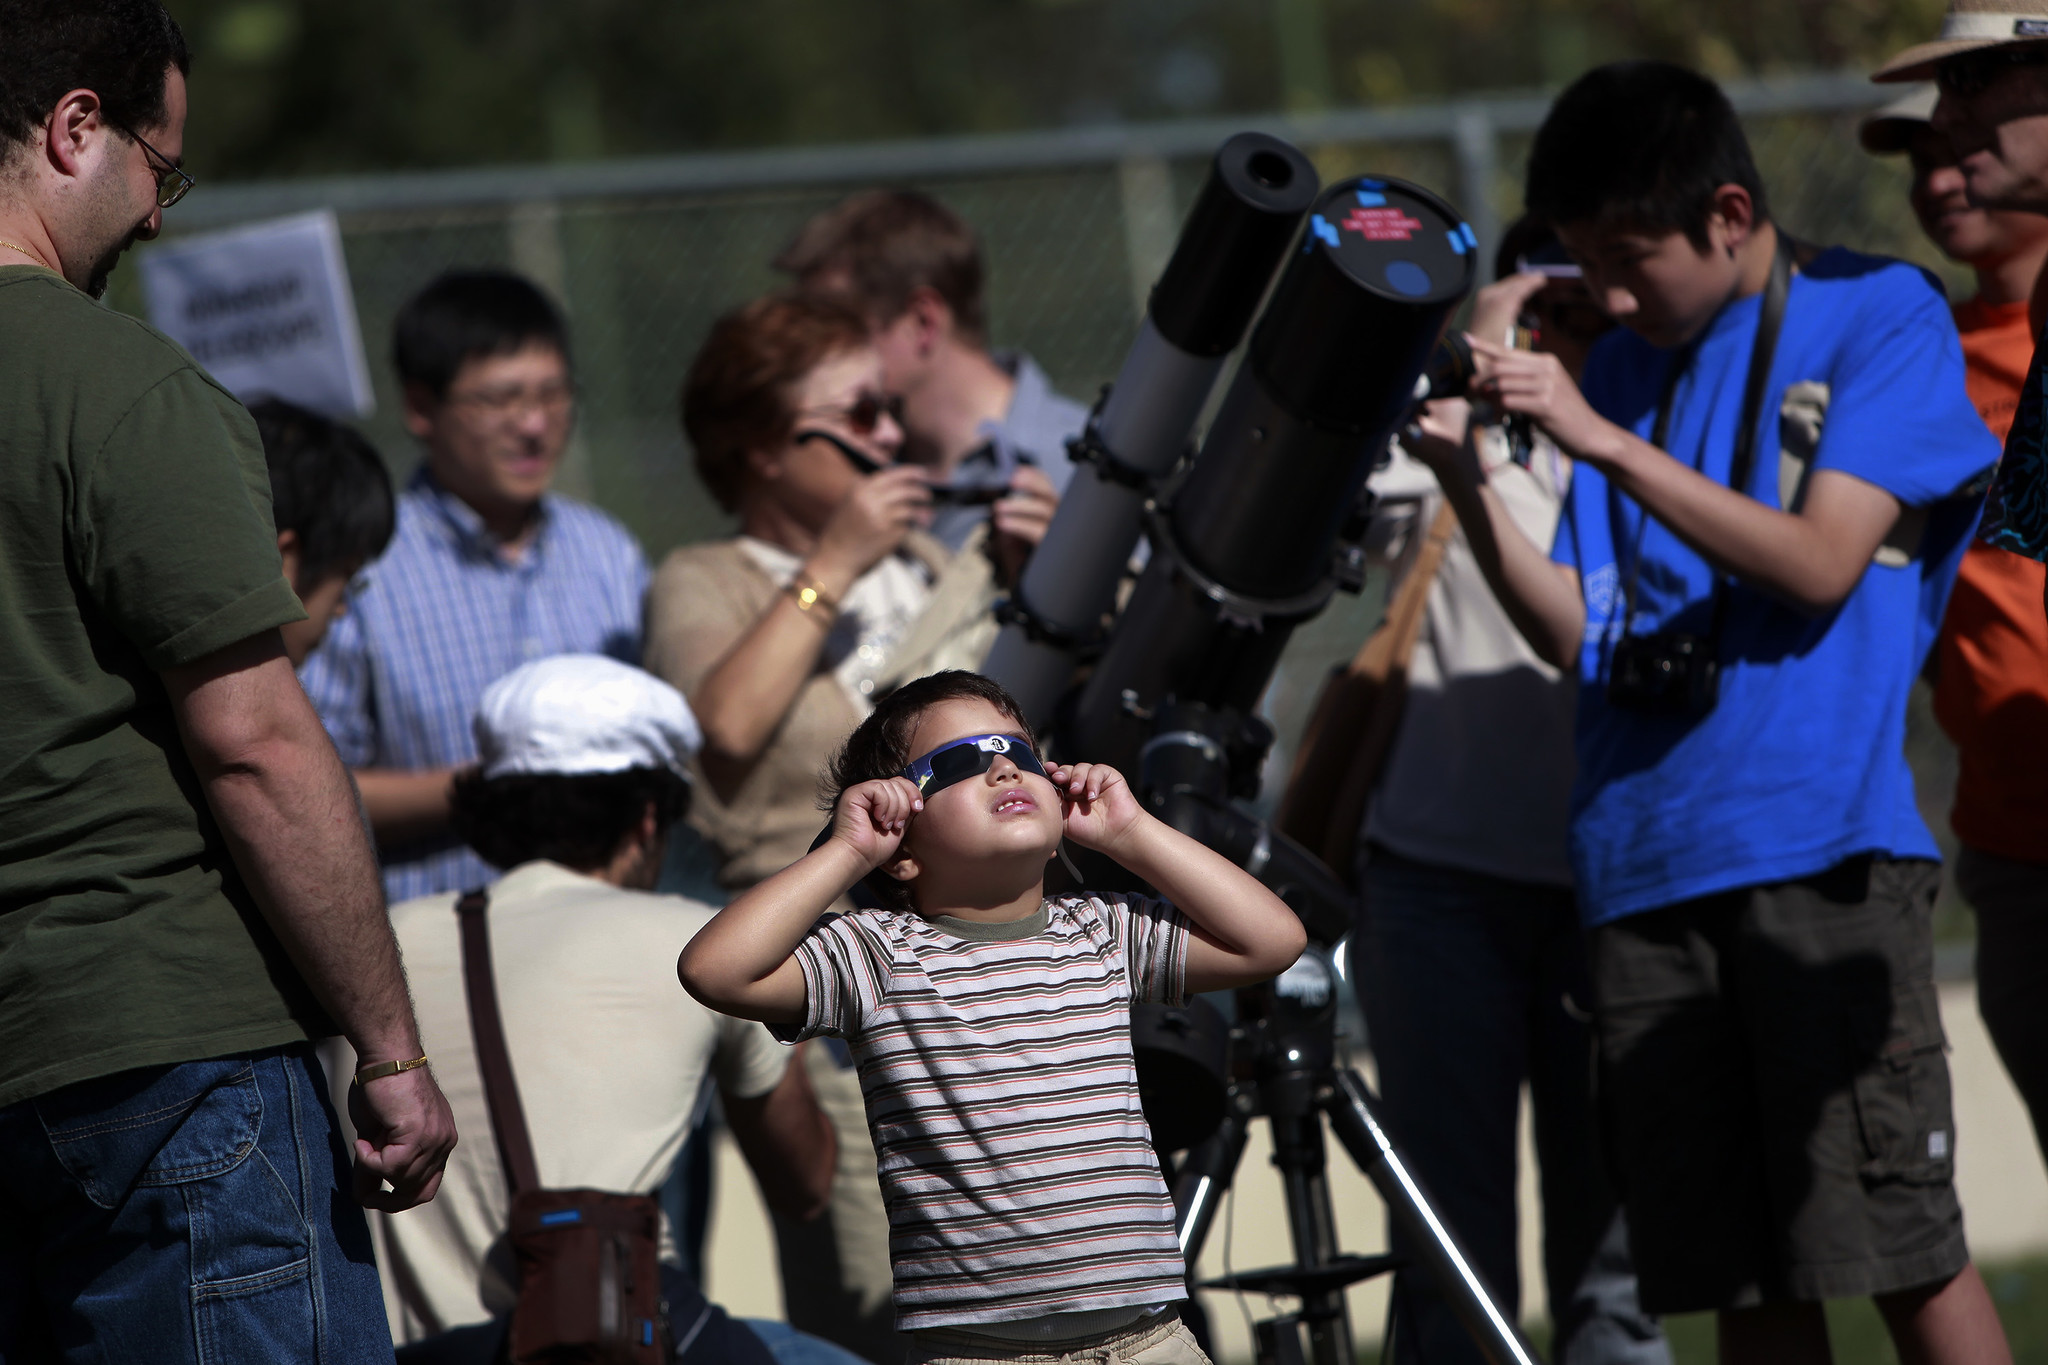 Skywatchers gathered at the Caltech campus for the transit of Venus in 2012. The university opens its grounds again this year for the partial eclipse.